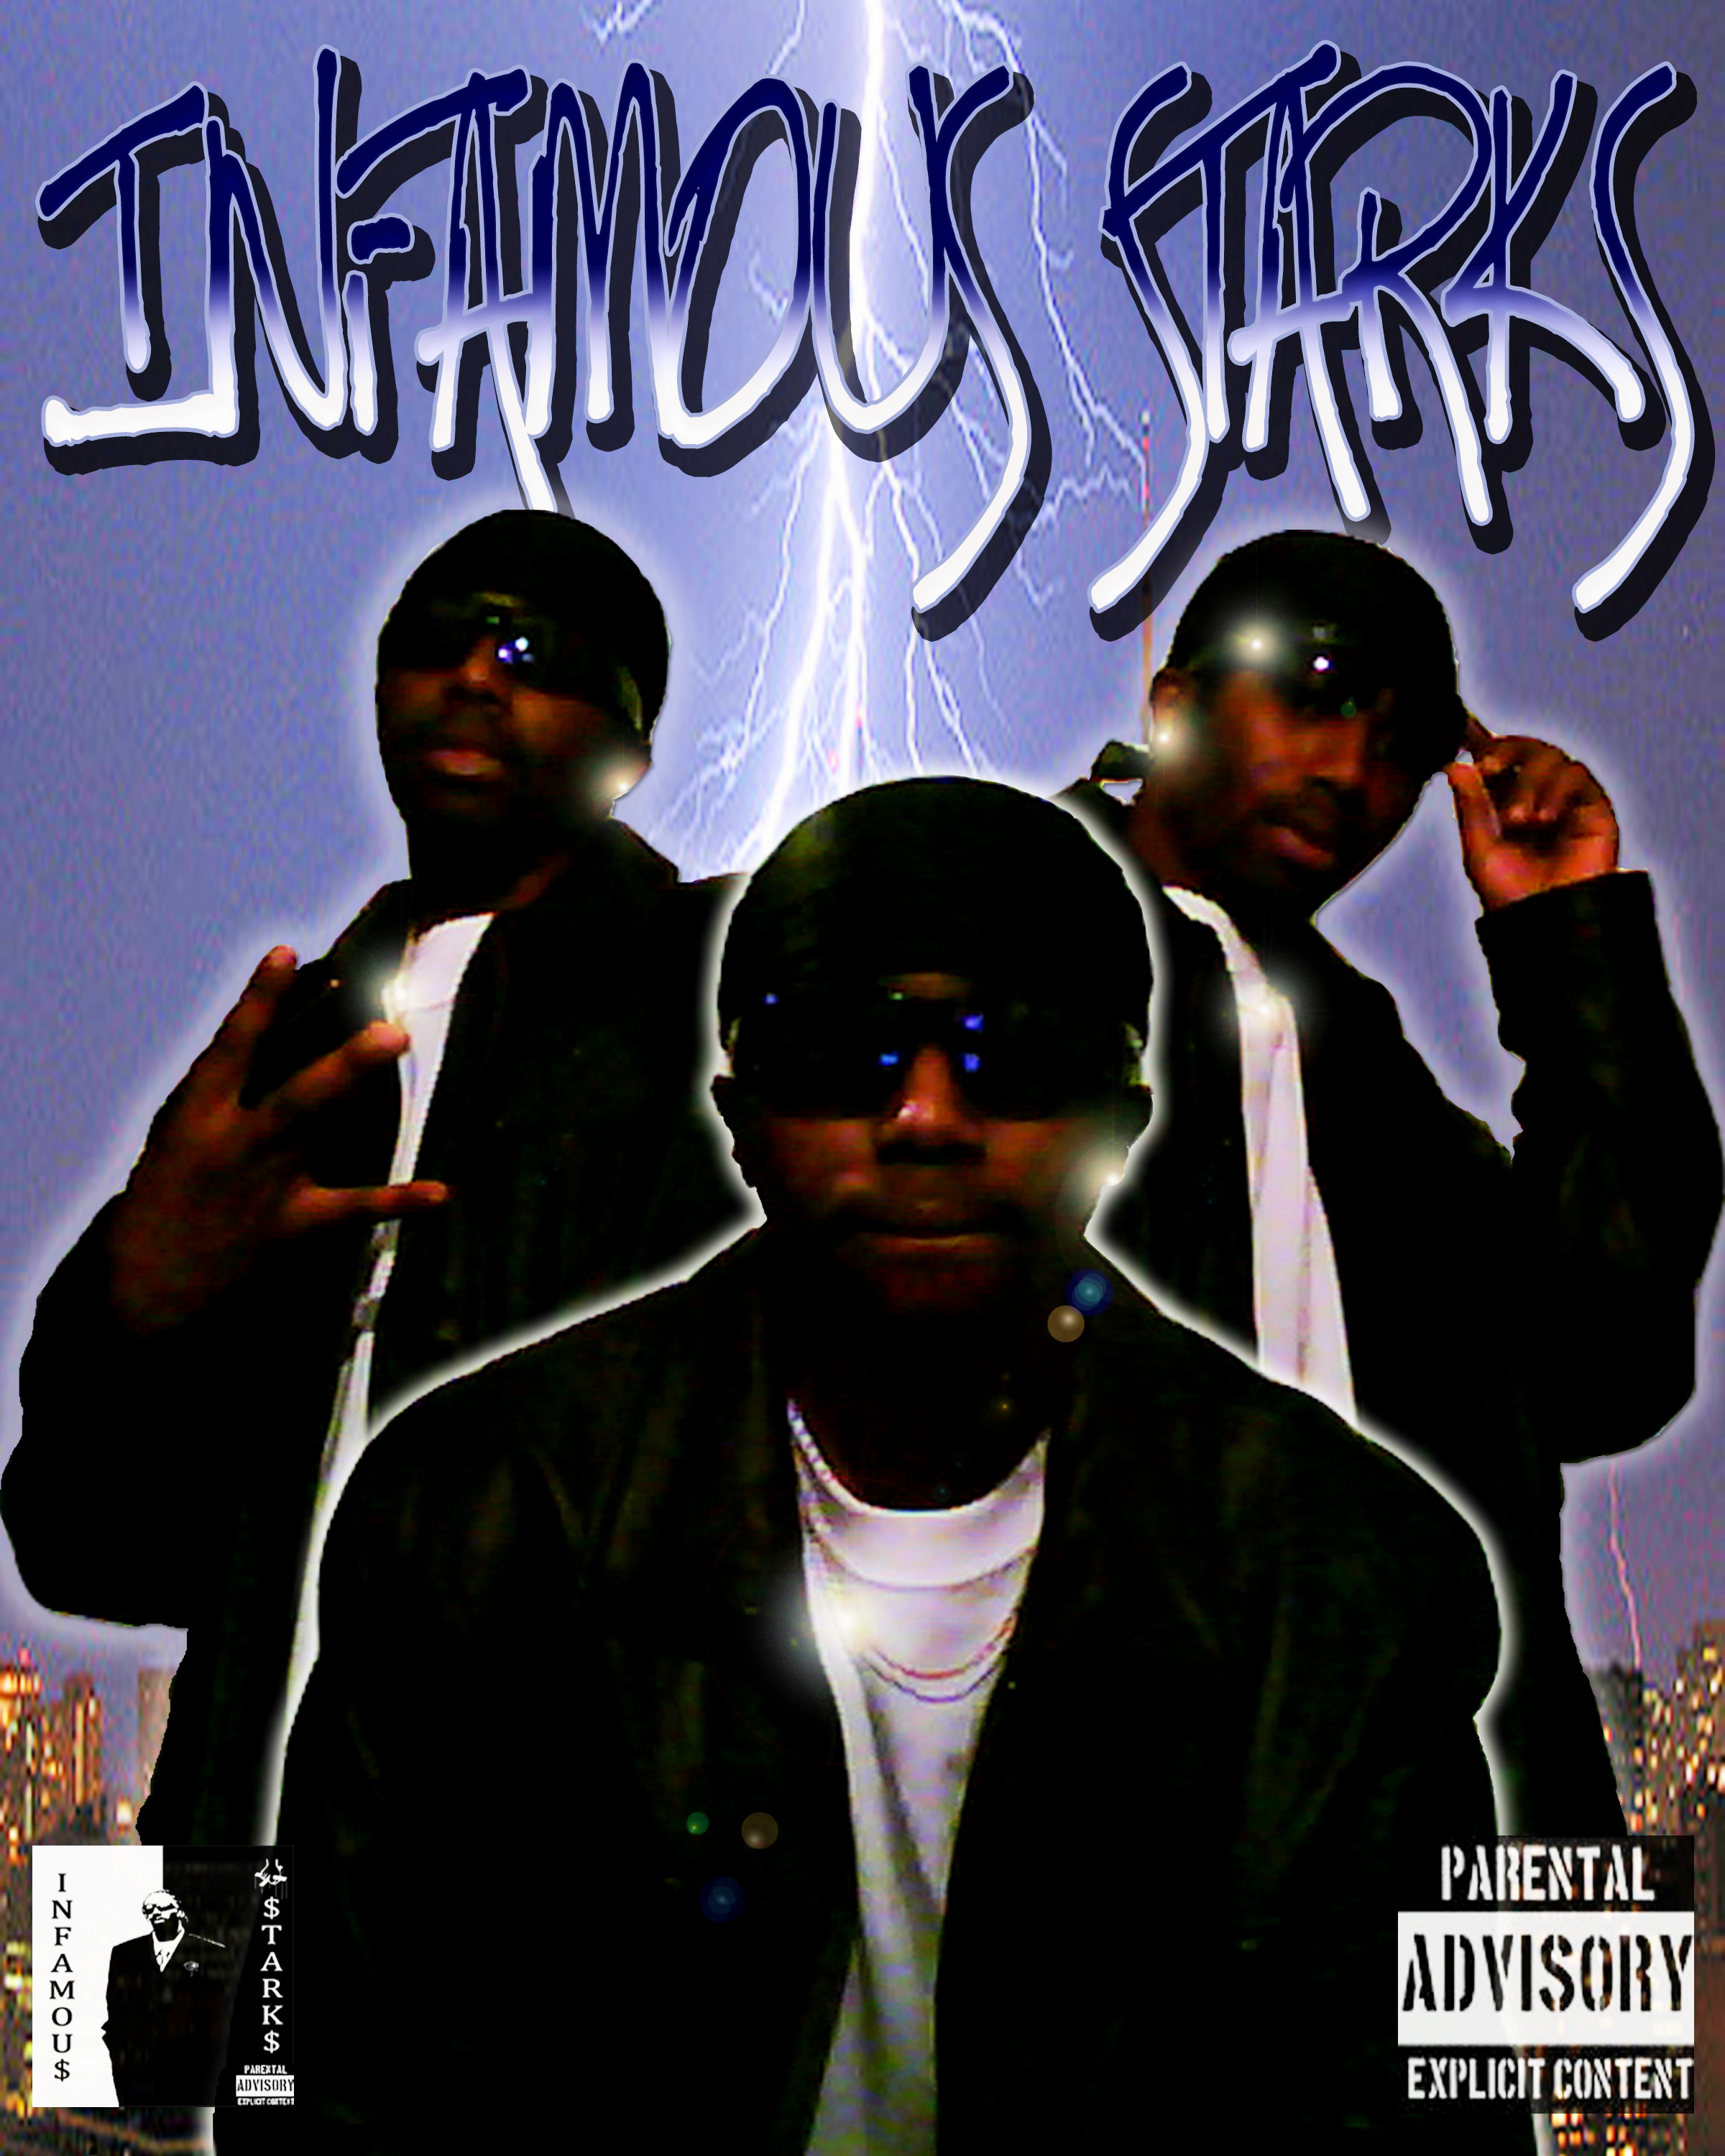 Infamous Starks album CDcover